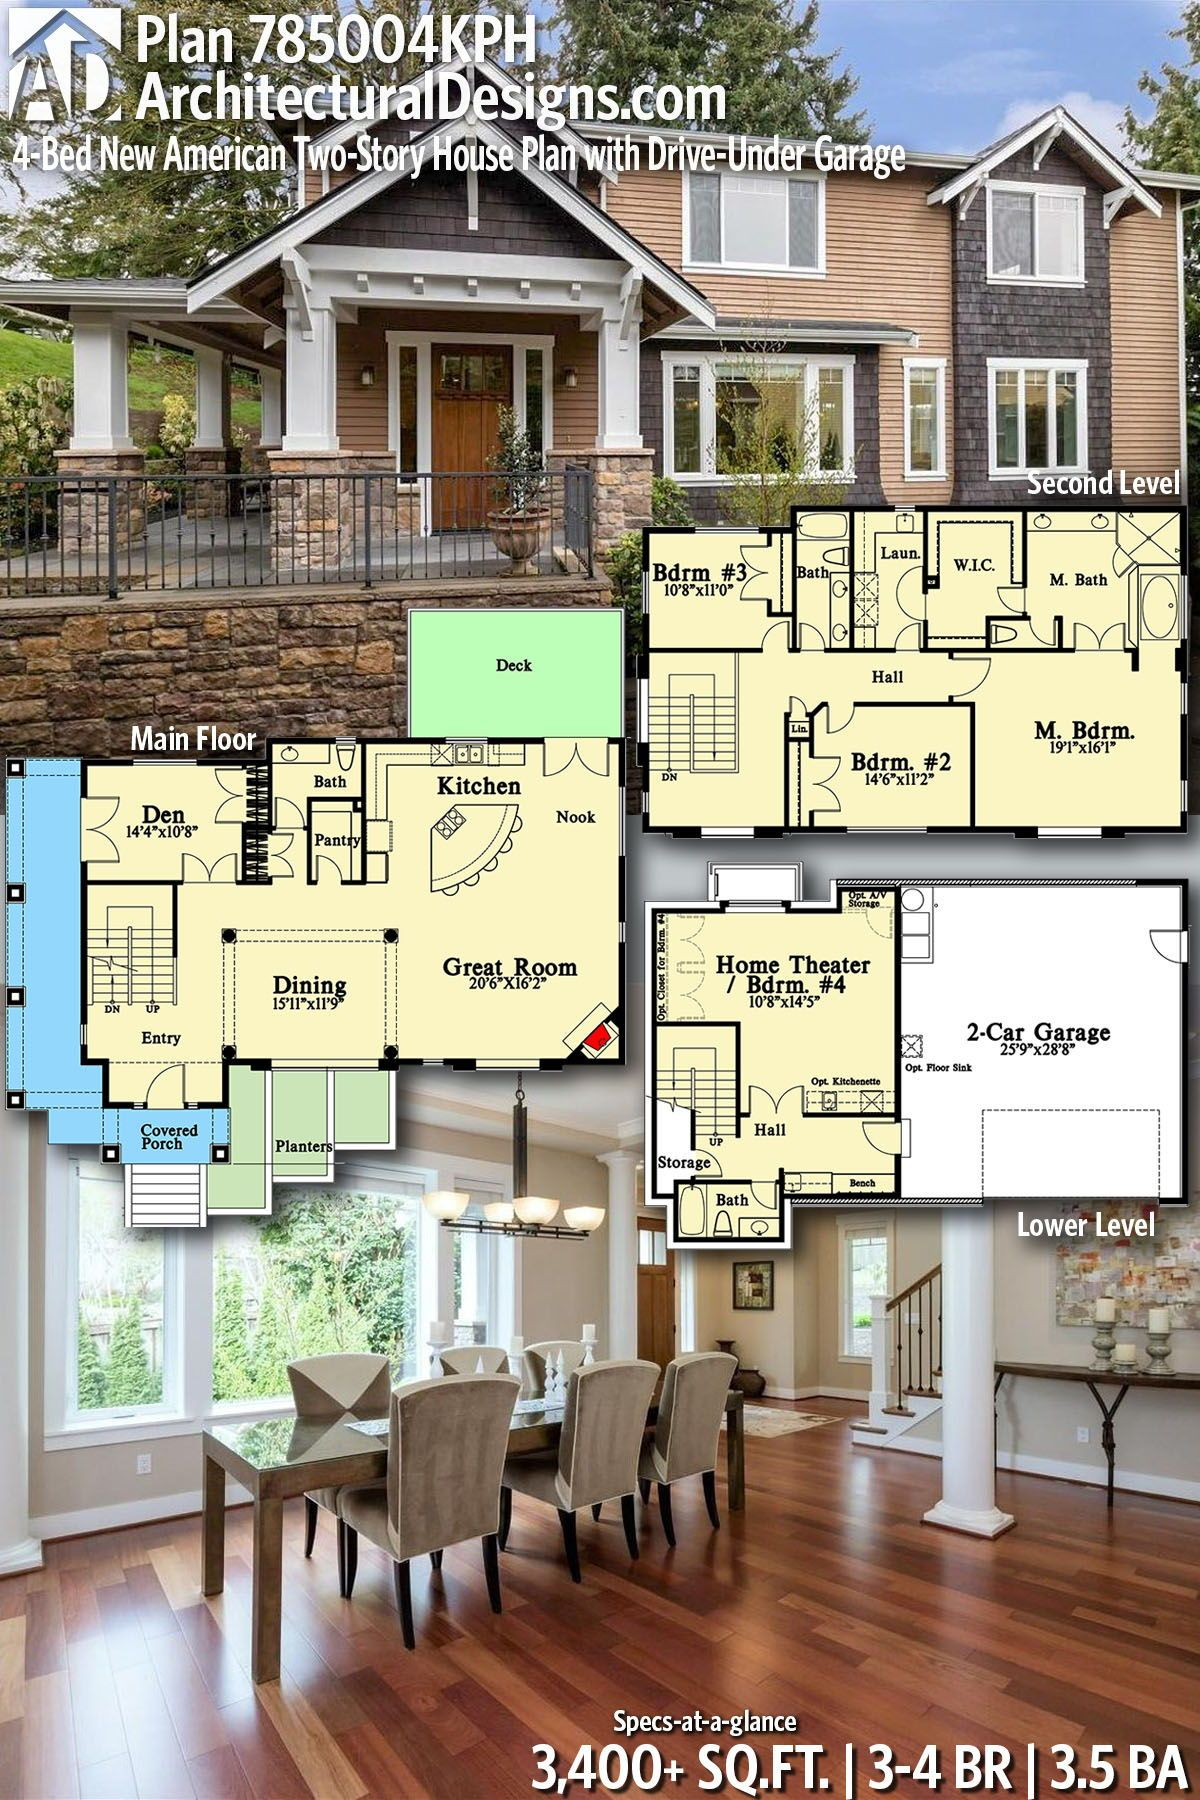 Plan 785004kph 4 Bed New American Two Story House Plan With Drive Under Garage House Plans Two Story House Plans House